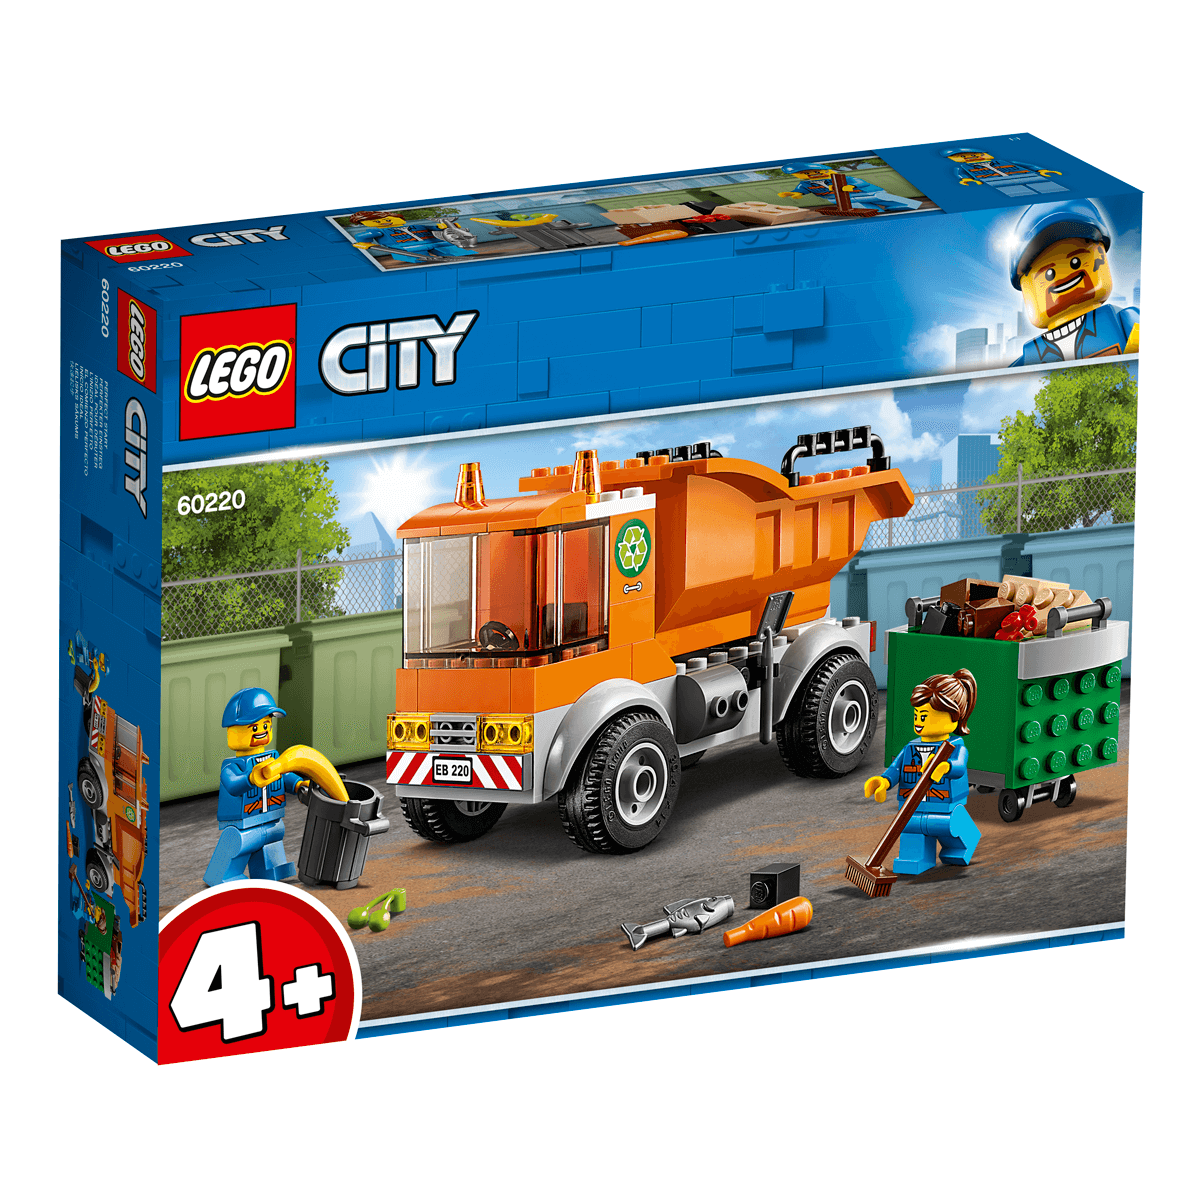 LEGO City Garbage Truck - 60220